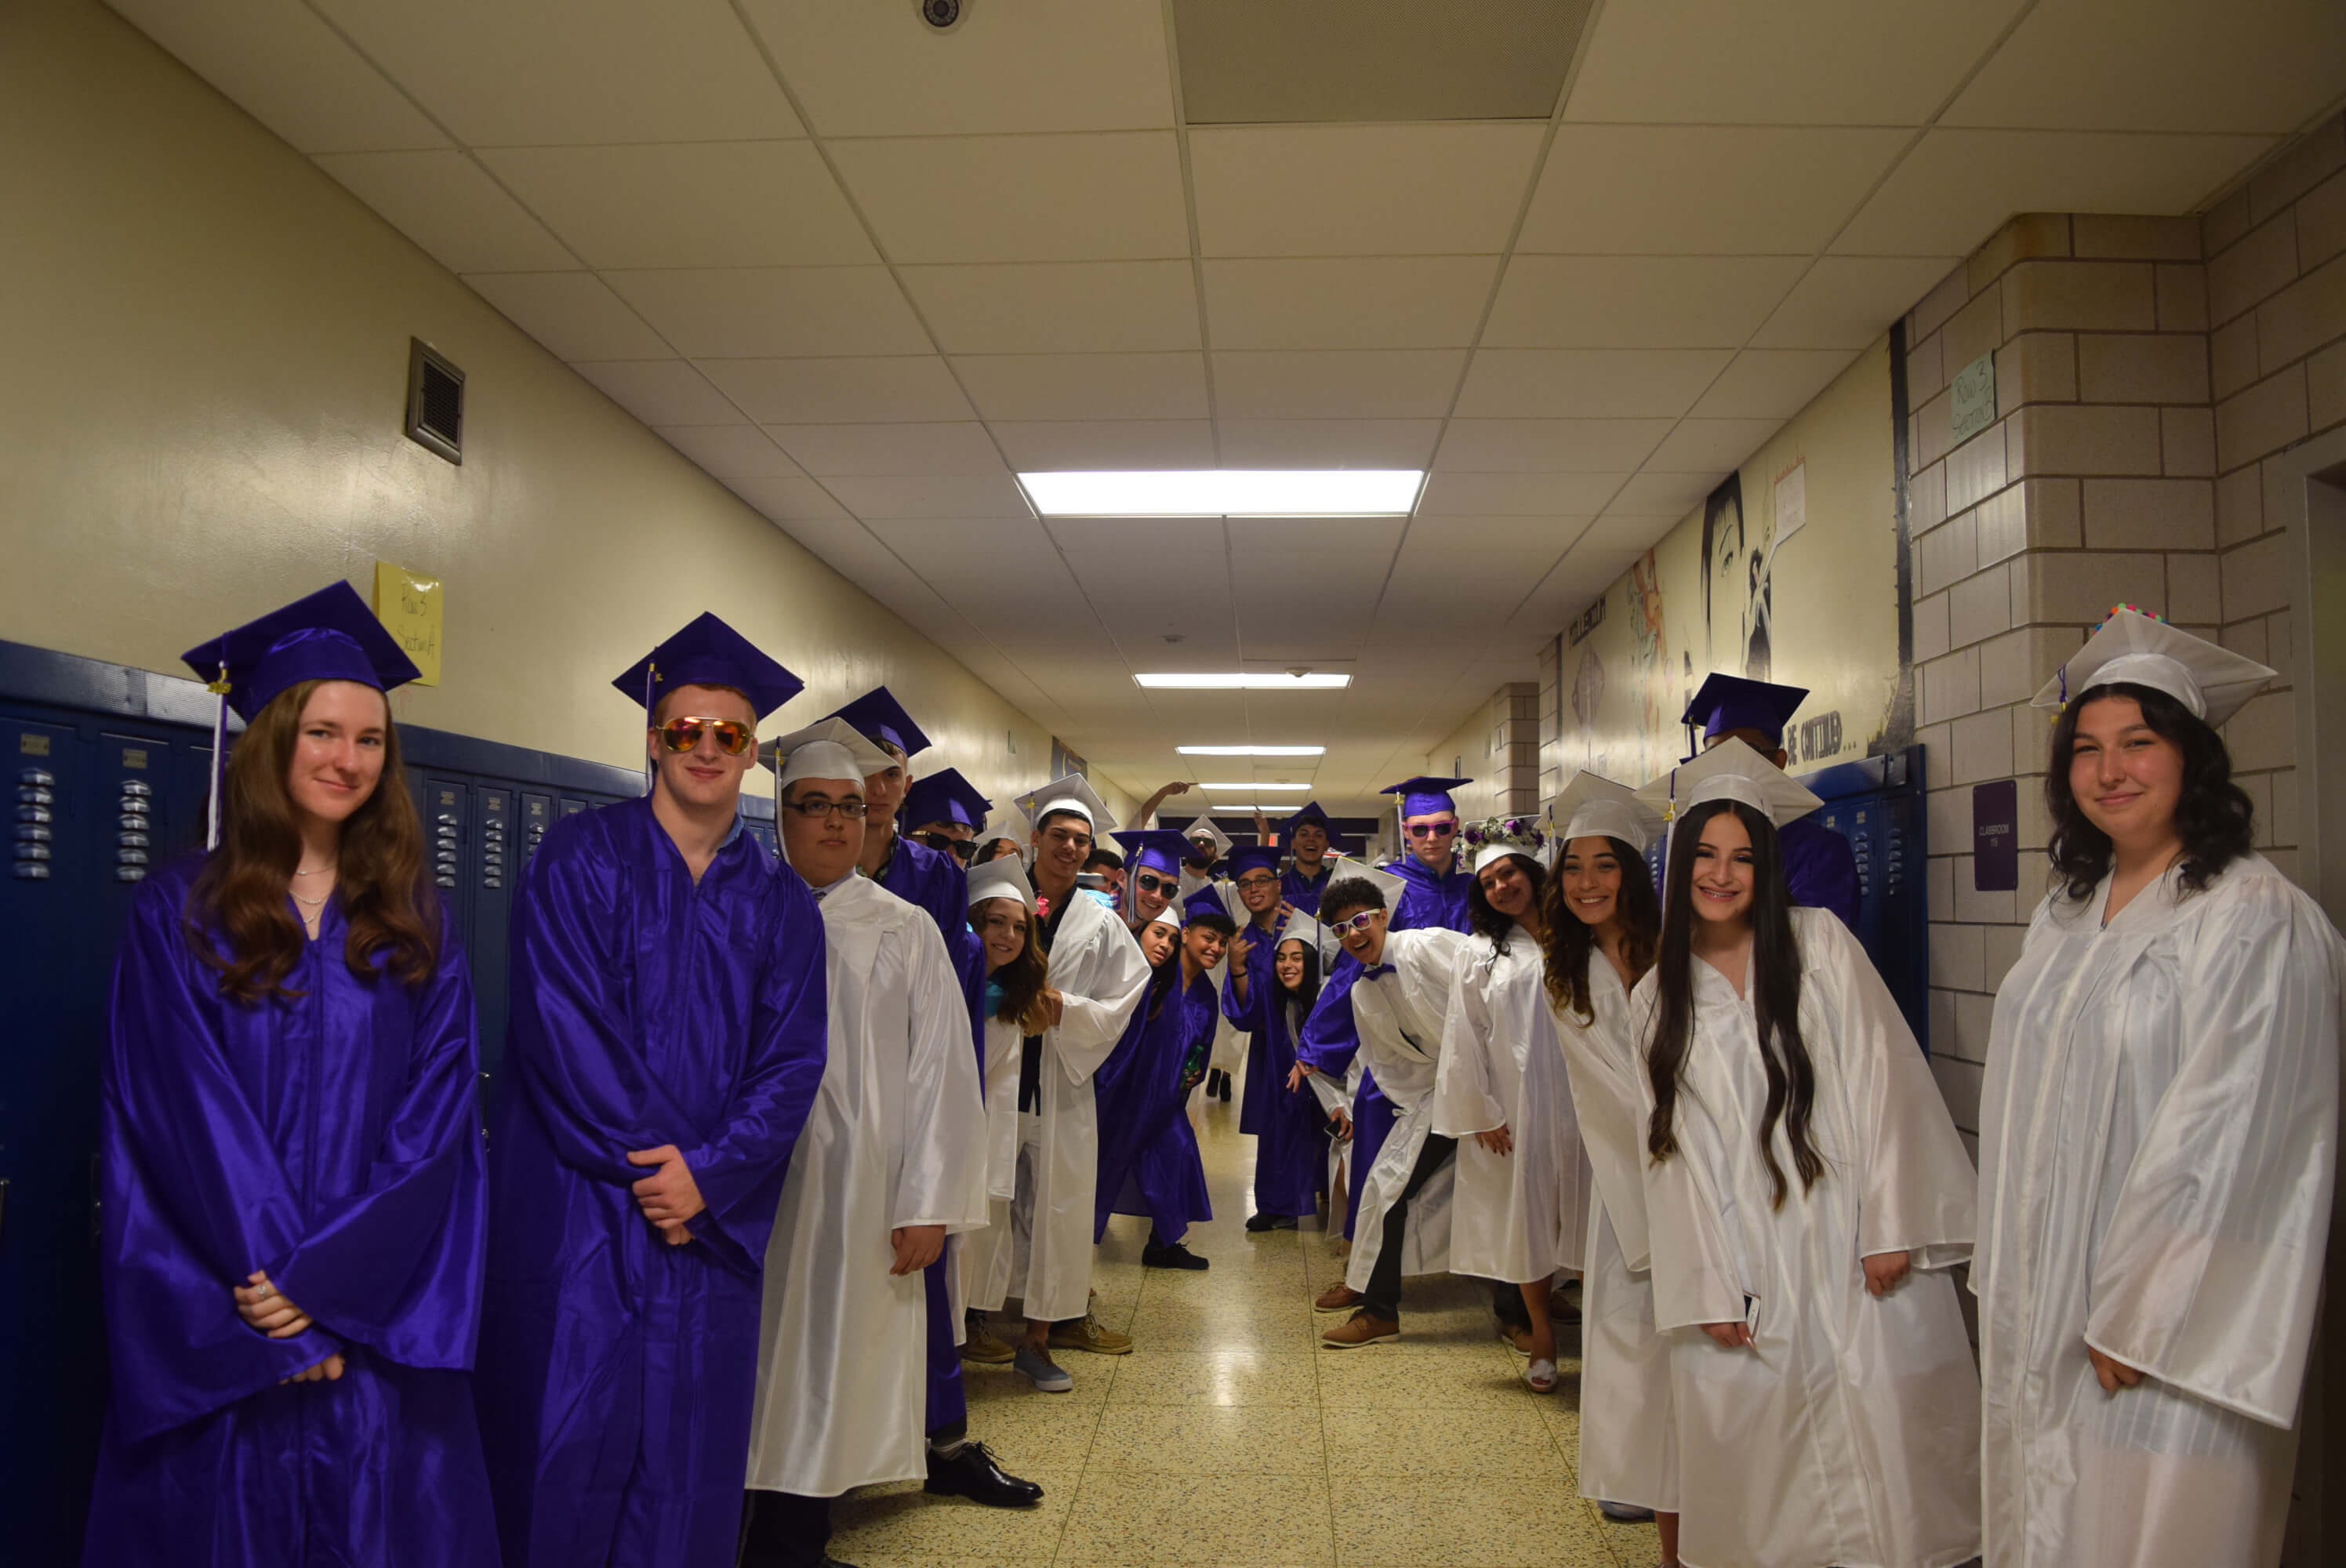 PRESS RELEASE: Holyoke High School Class of 2019 Commencement